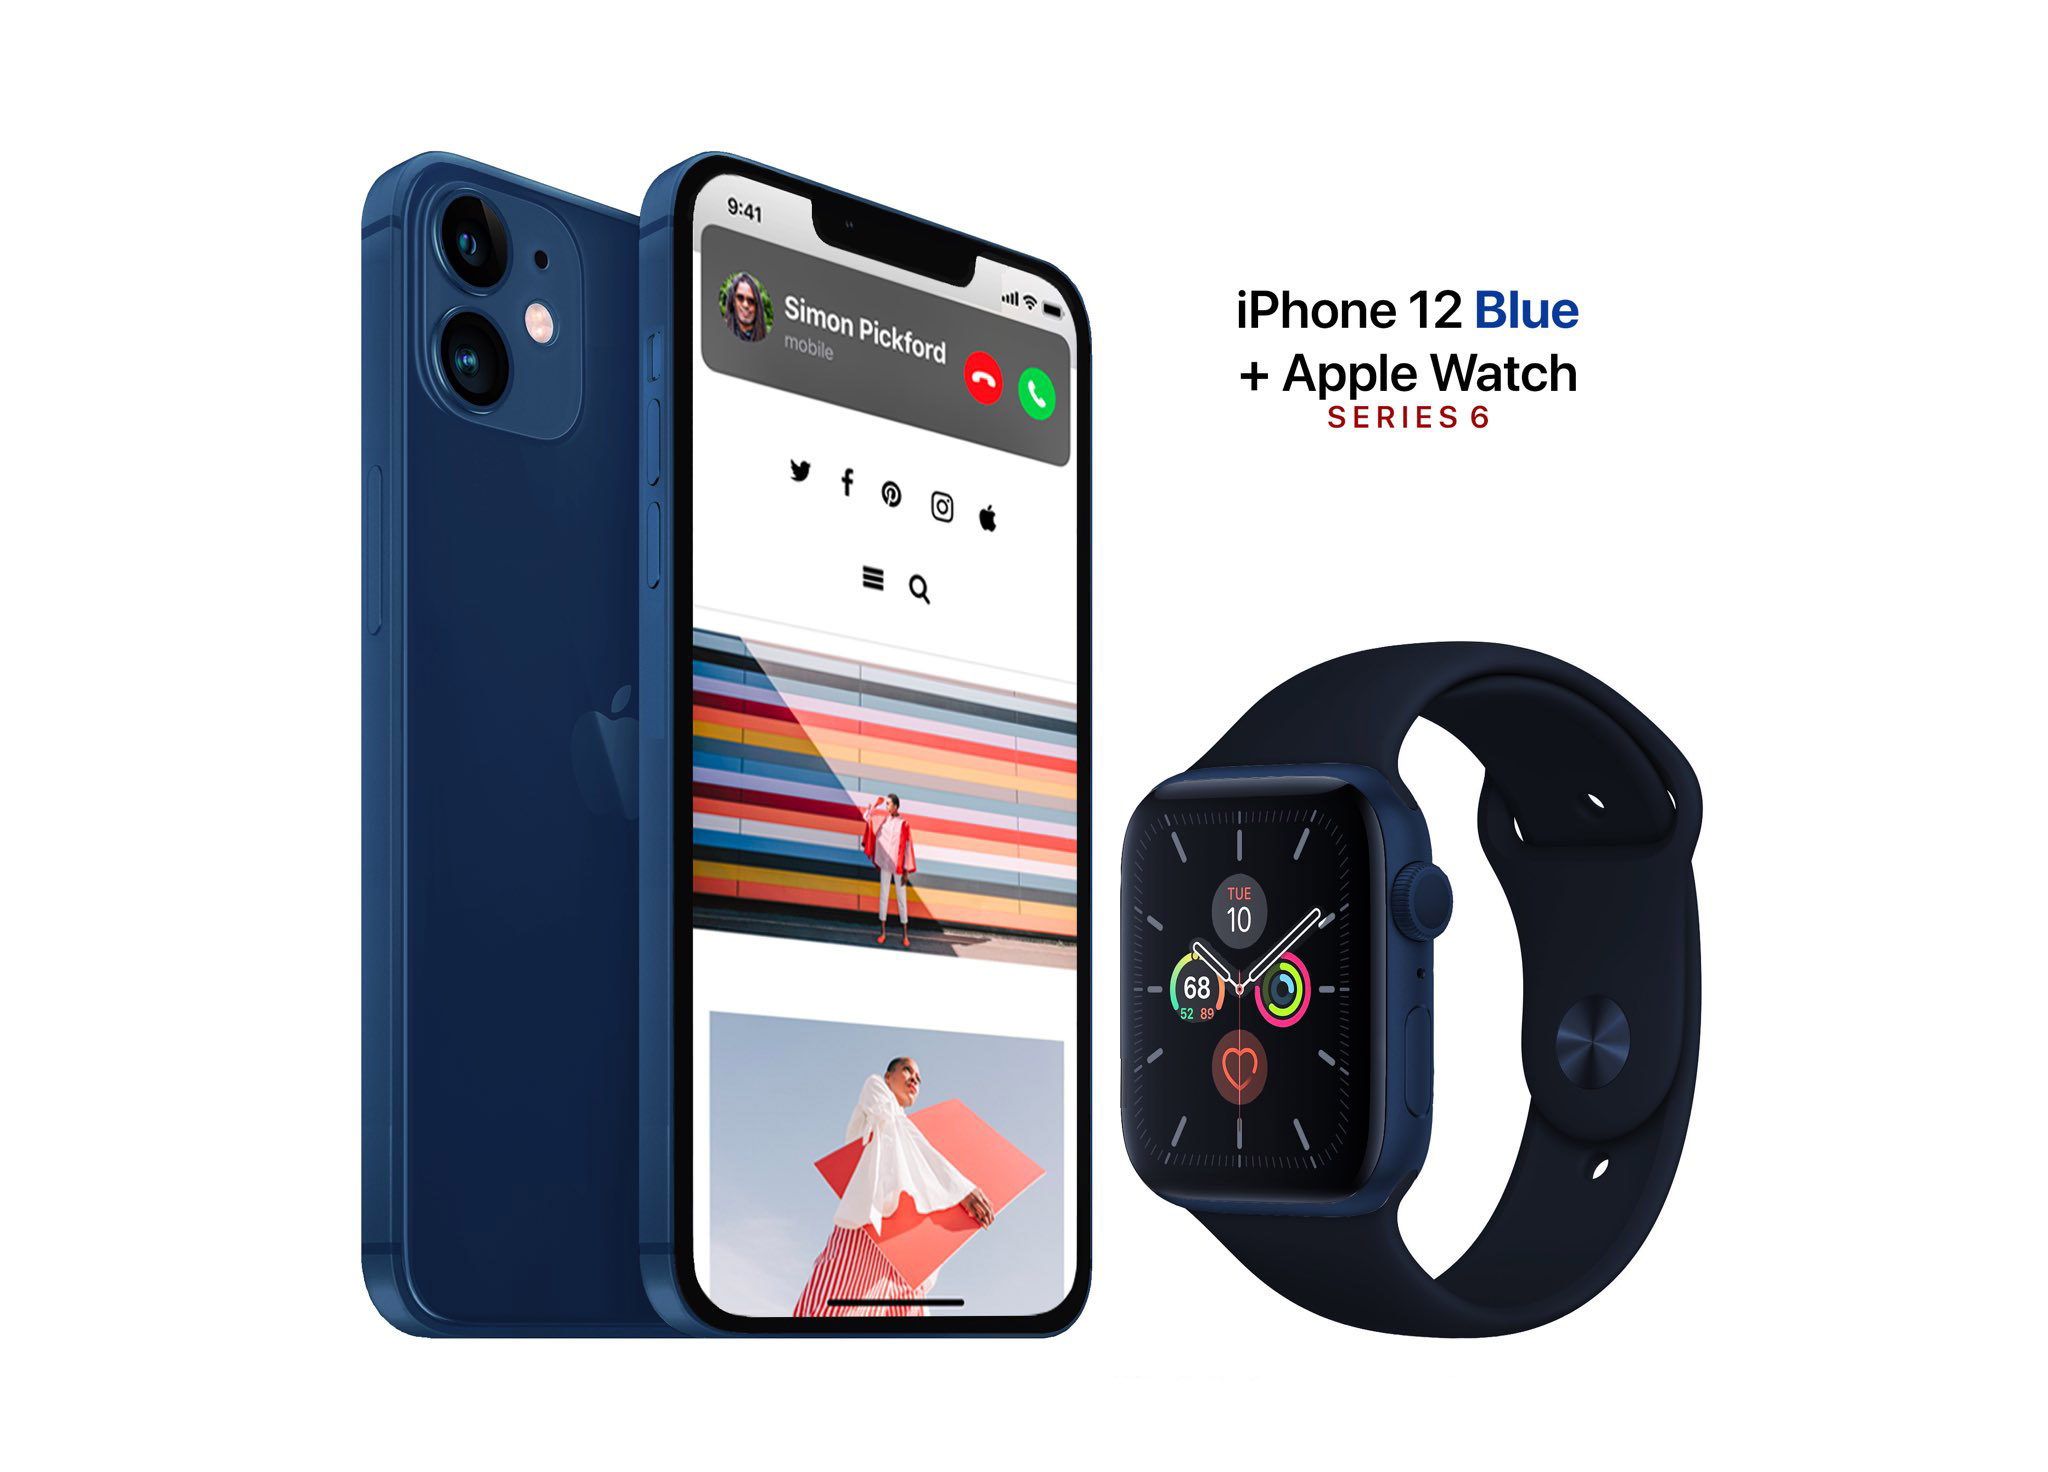 iPhone-12-Max-and-Apple-Watch-Series-6-in-Navy-Blue-color-concept.jpg